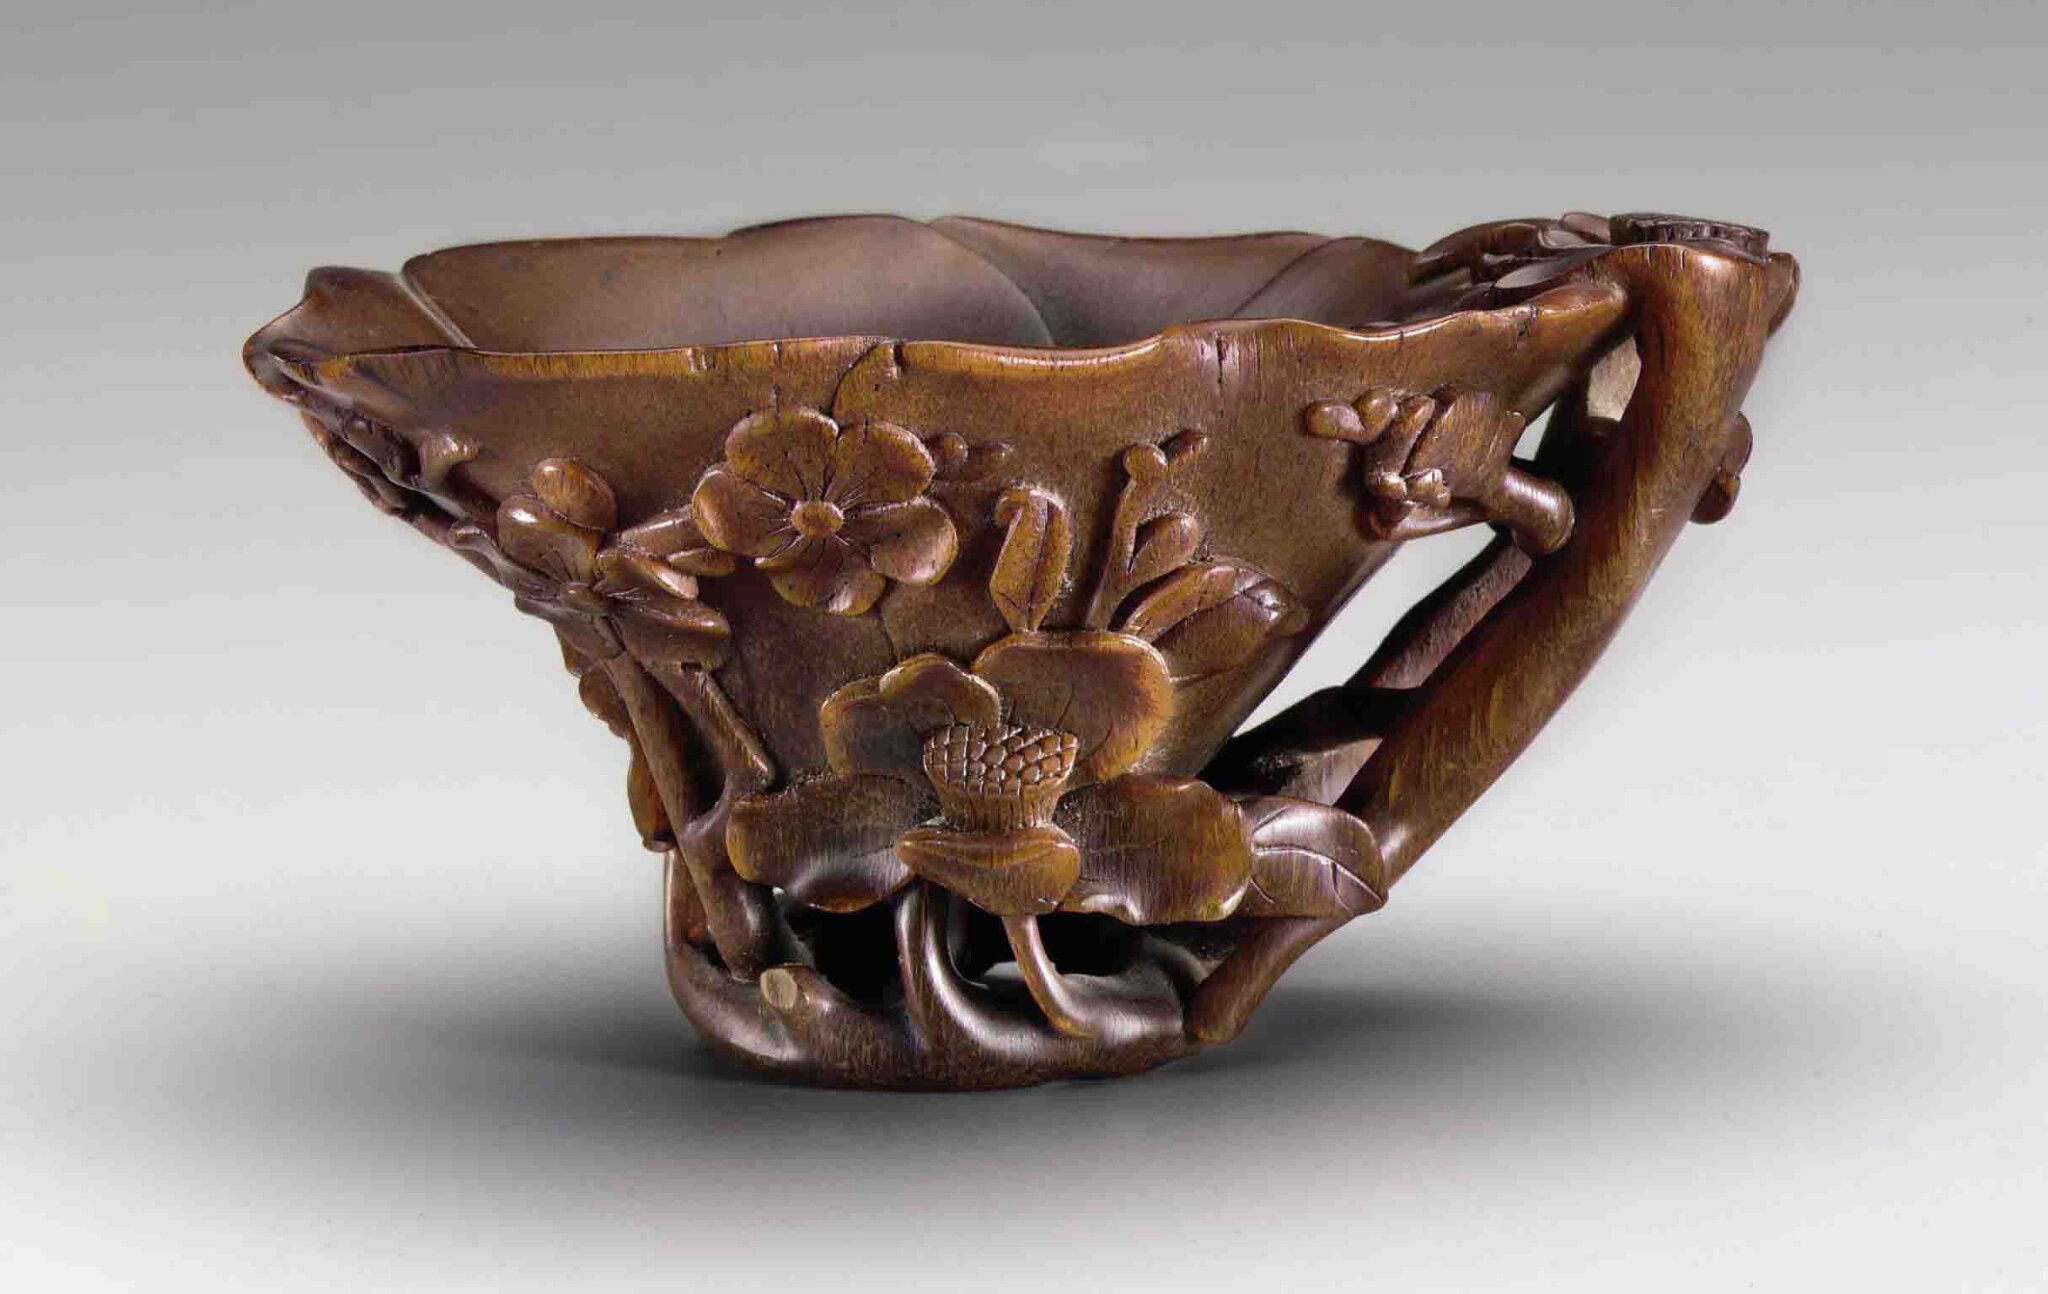 A rhinoceros horn flower-form cup, 17th-18th century